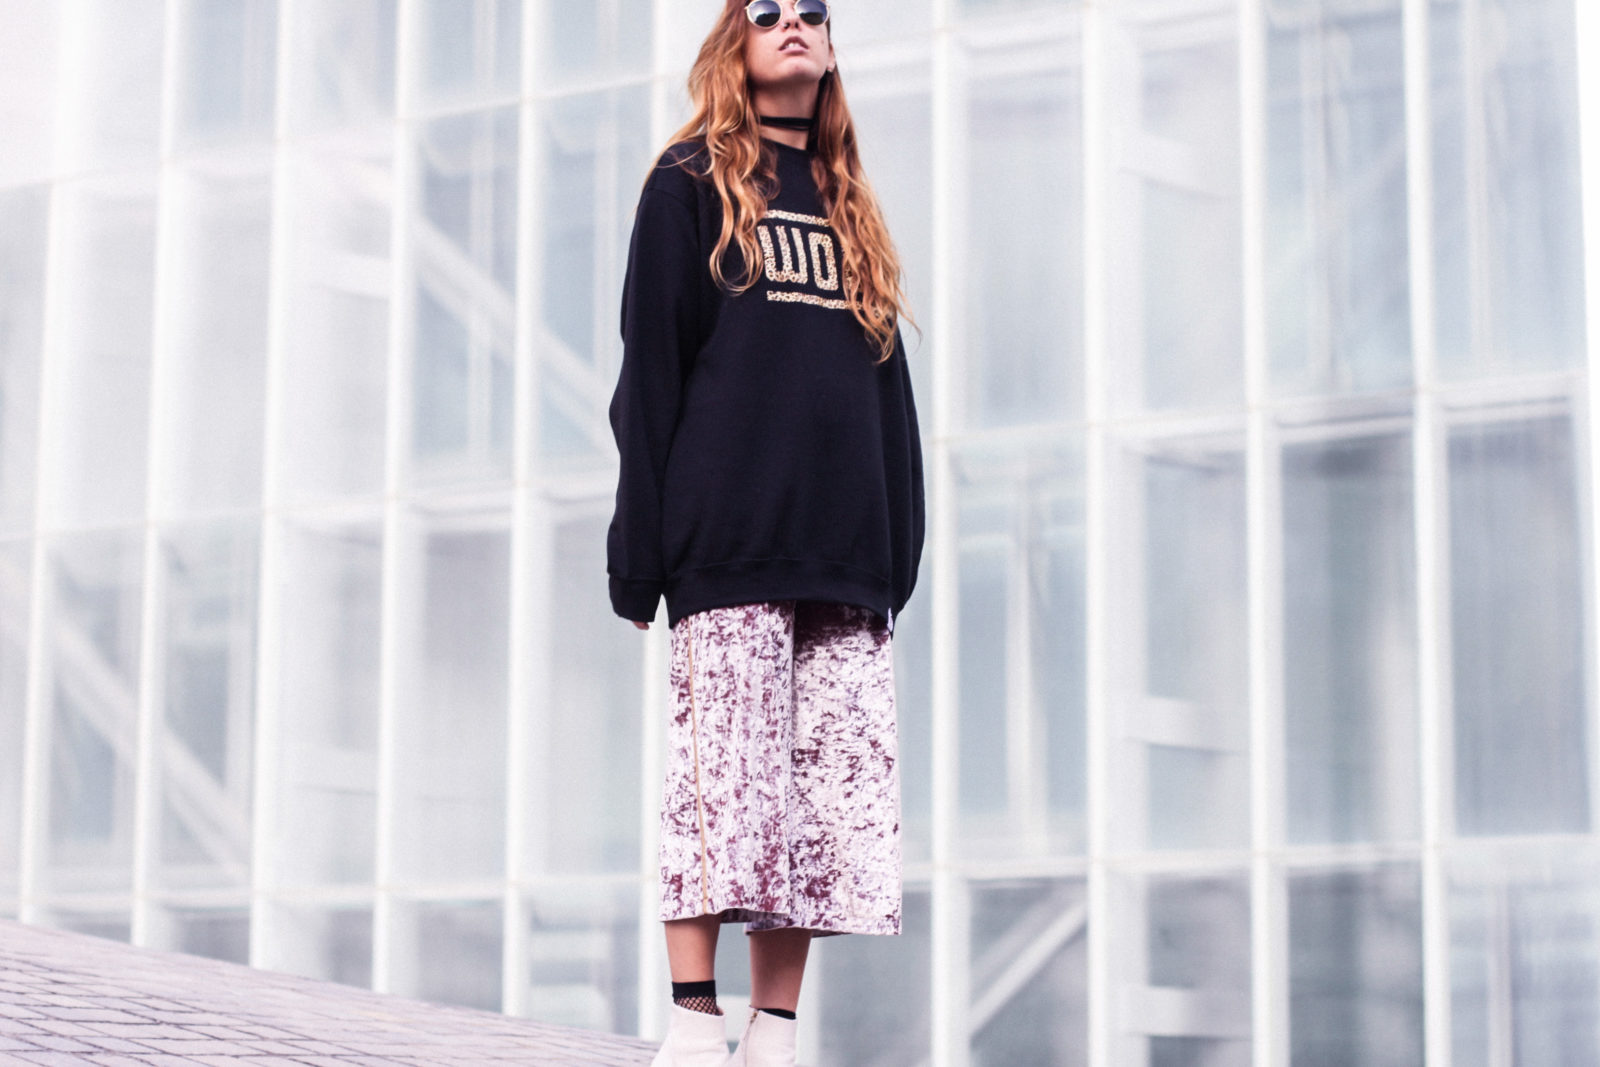 sudadera_woof_old_dogs_pantalones_terciopelo_rosa_botines_blancos_sweatshirt_oversize_choker_calcetines_rejilla_tendencias_2016_fall_trends_street_style_donkeycool-50